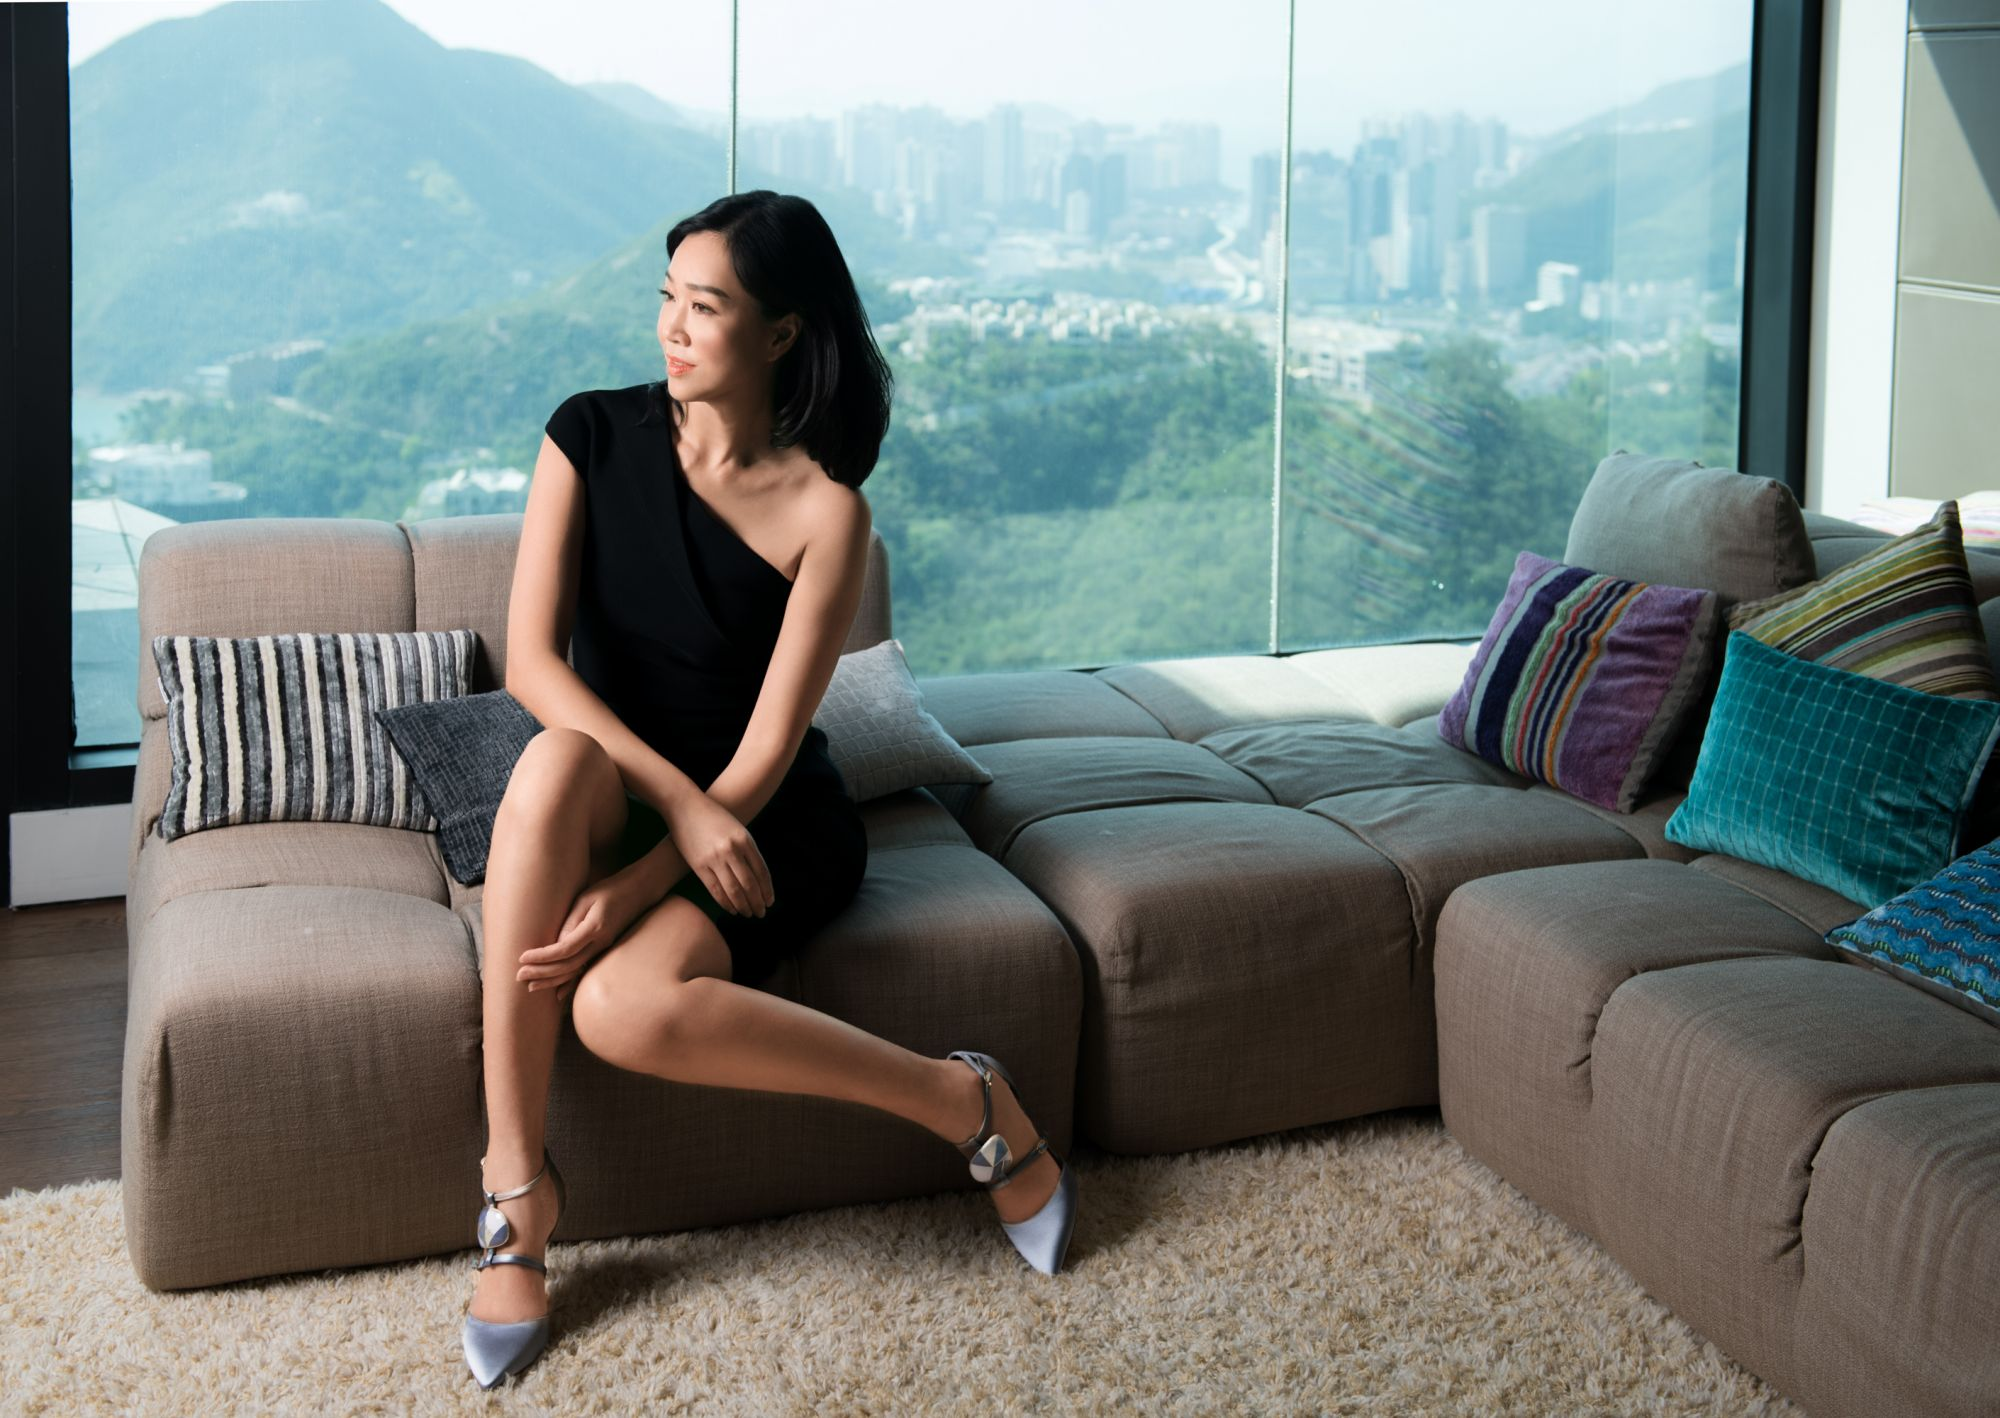 The Next Step With Angie Ting